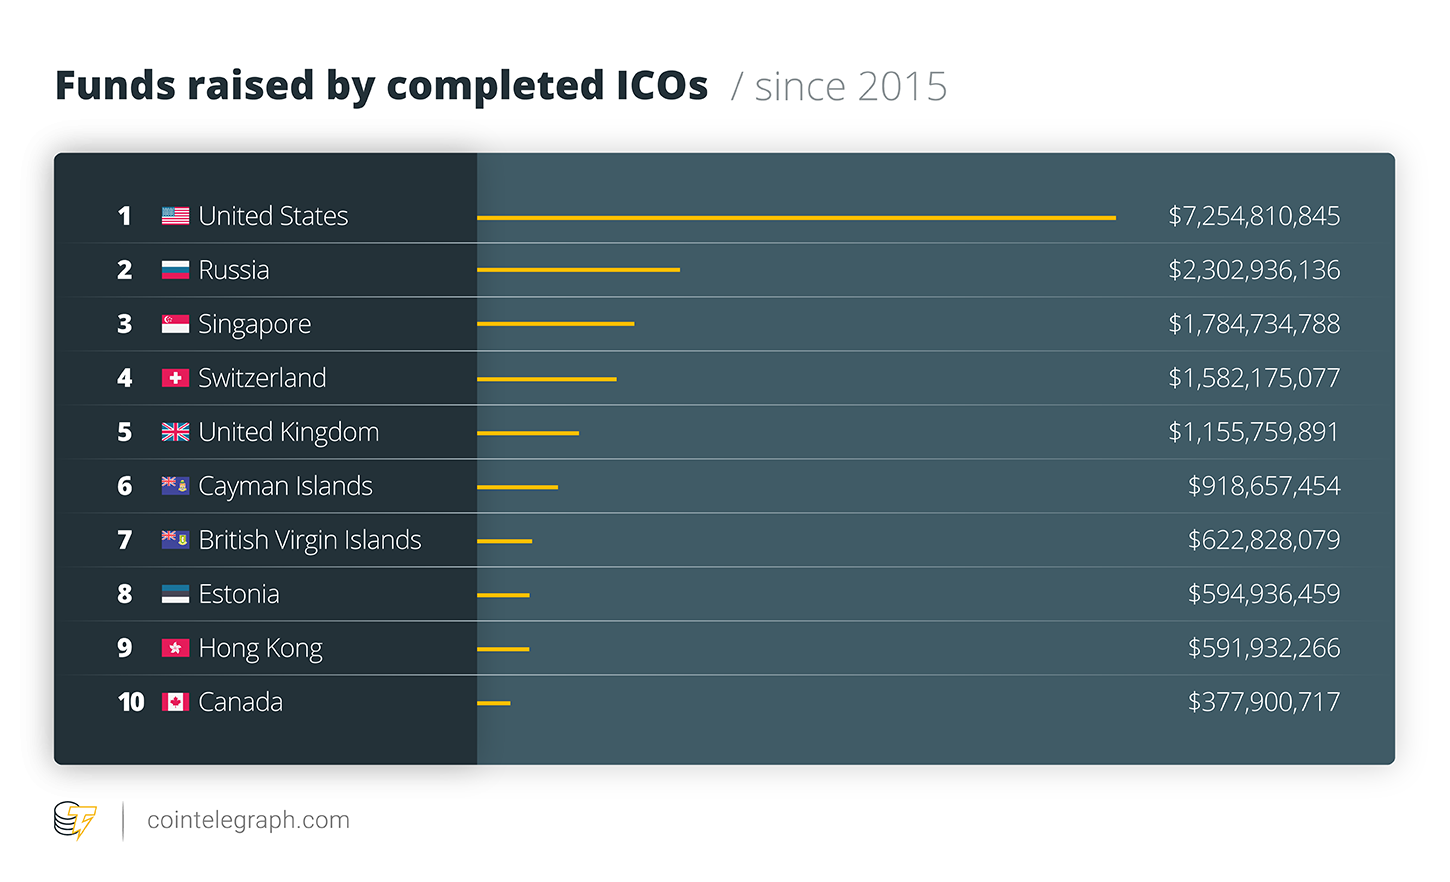 Funds raised by completed ICOs